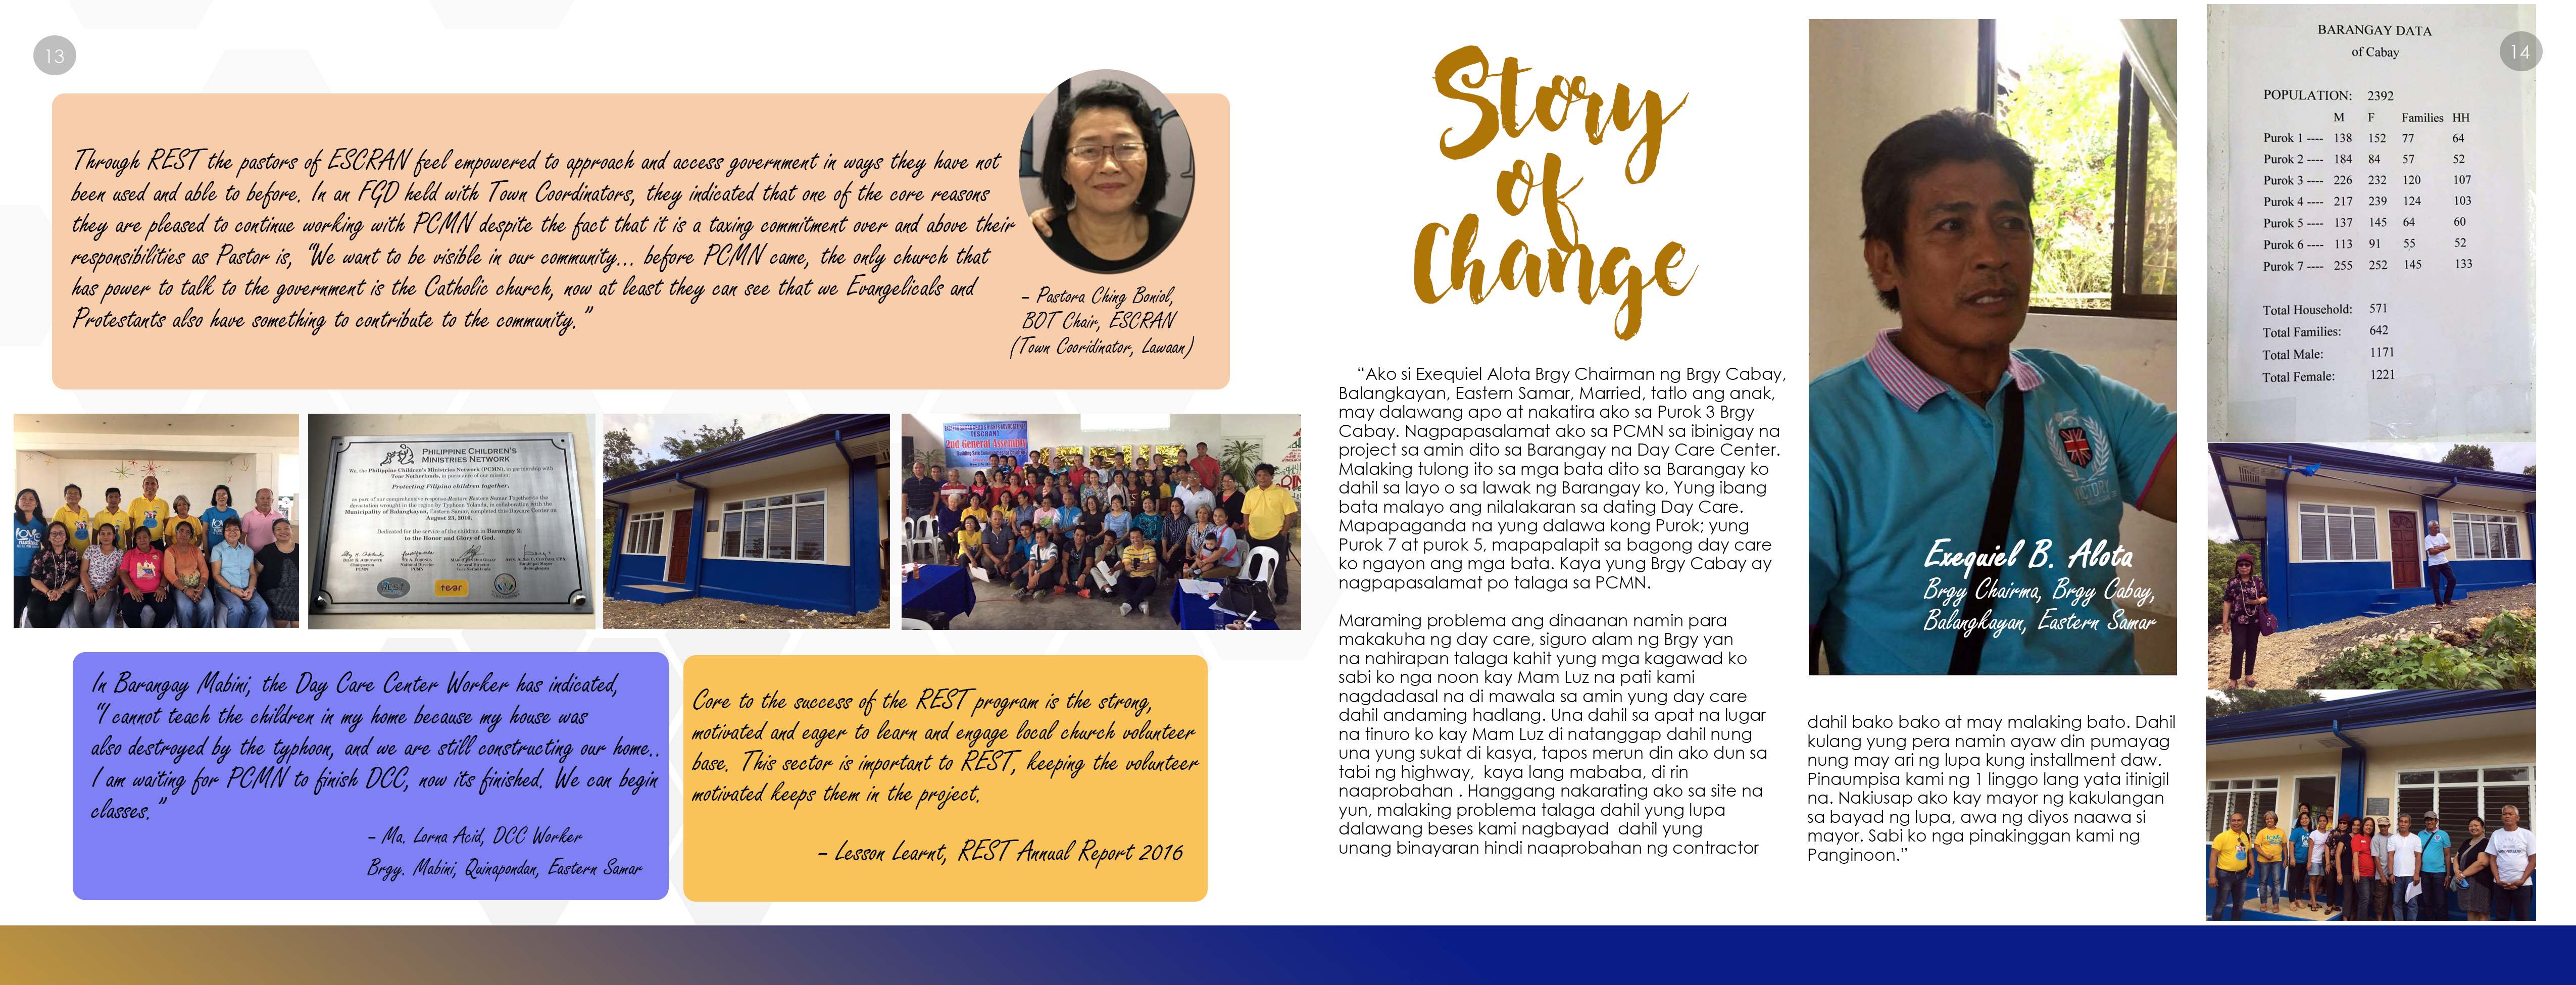 13-14 Stories of Change 2